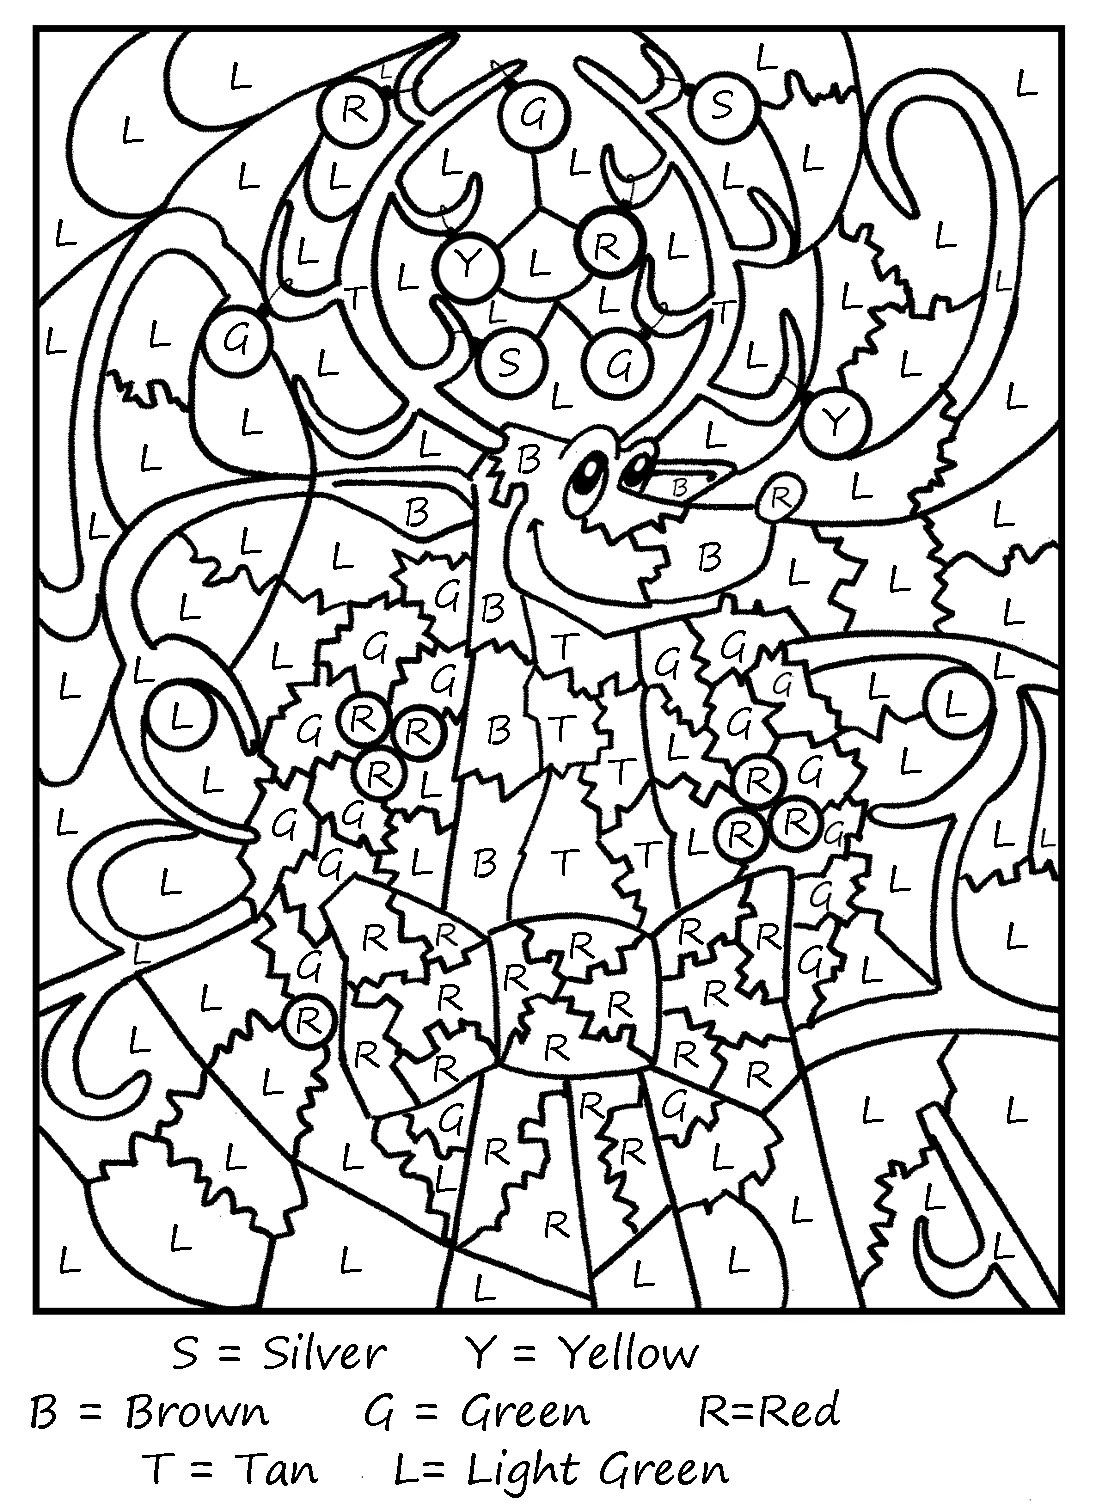 Color By Letters Coloring Pages - Best Coloring Pages For Kids   Printable  christmas coloring pages [ 1508 x 1096 Pixel ]